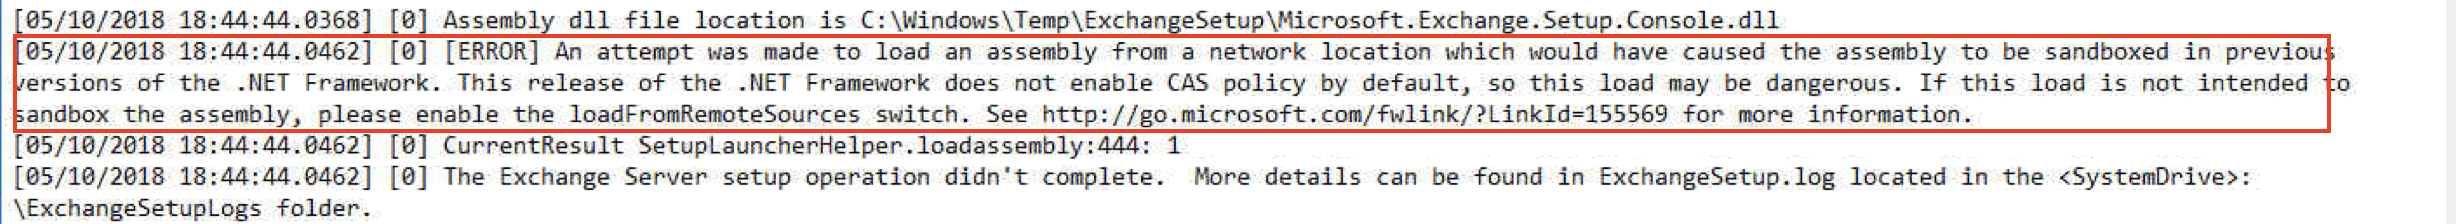 Exchange 2016 Installation Fails with: An attempt was made